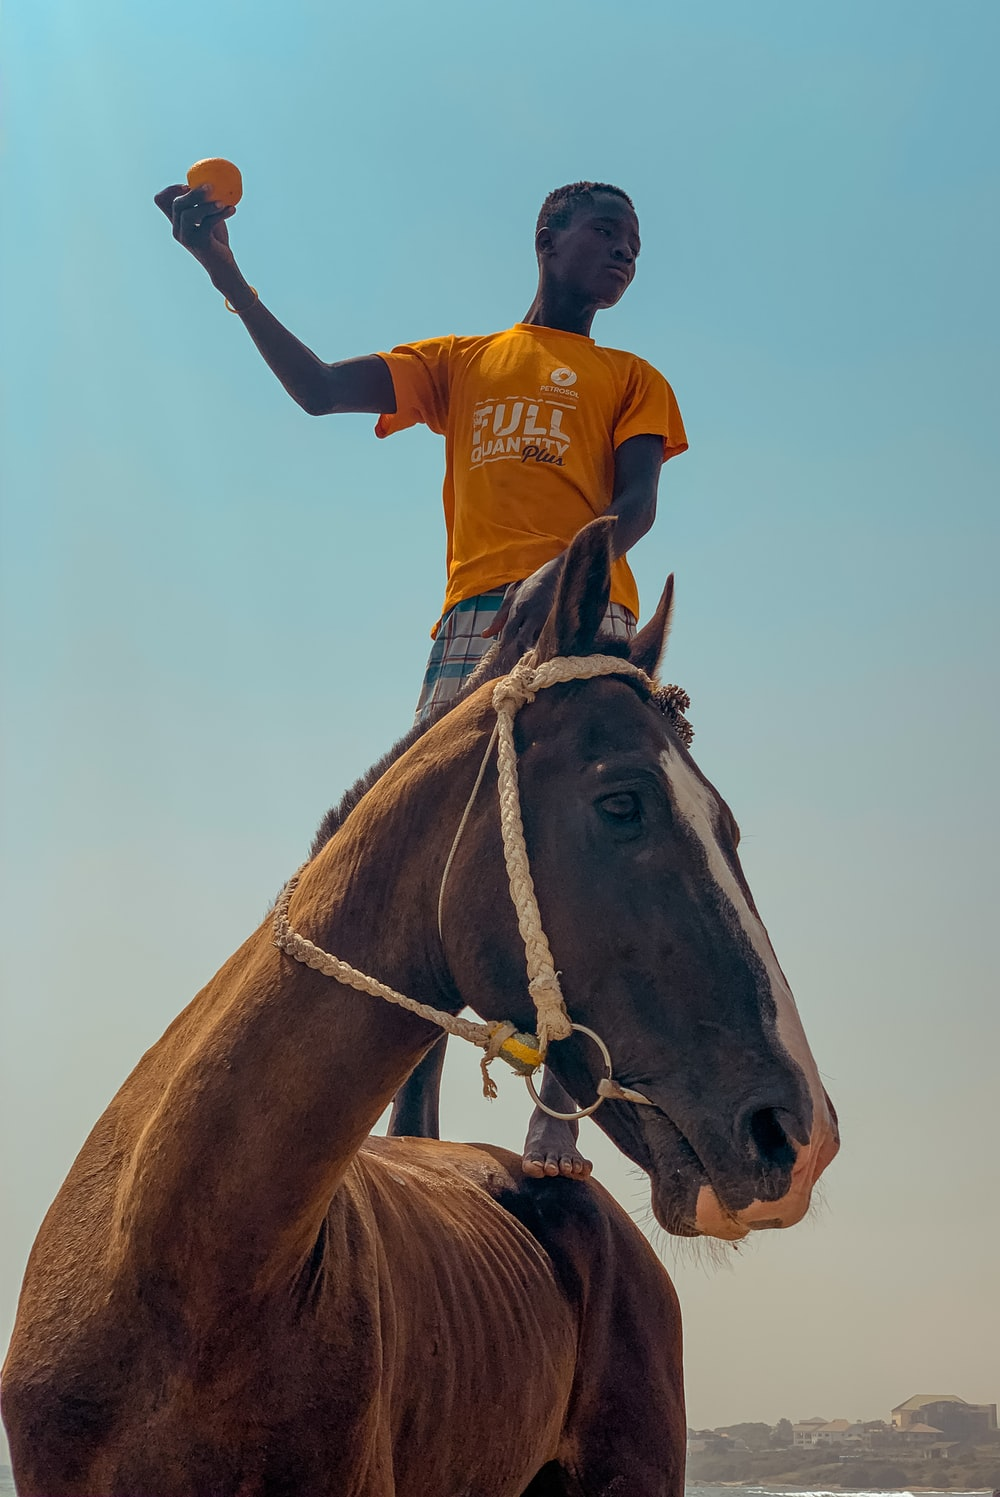 man standing on the horse